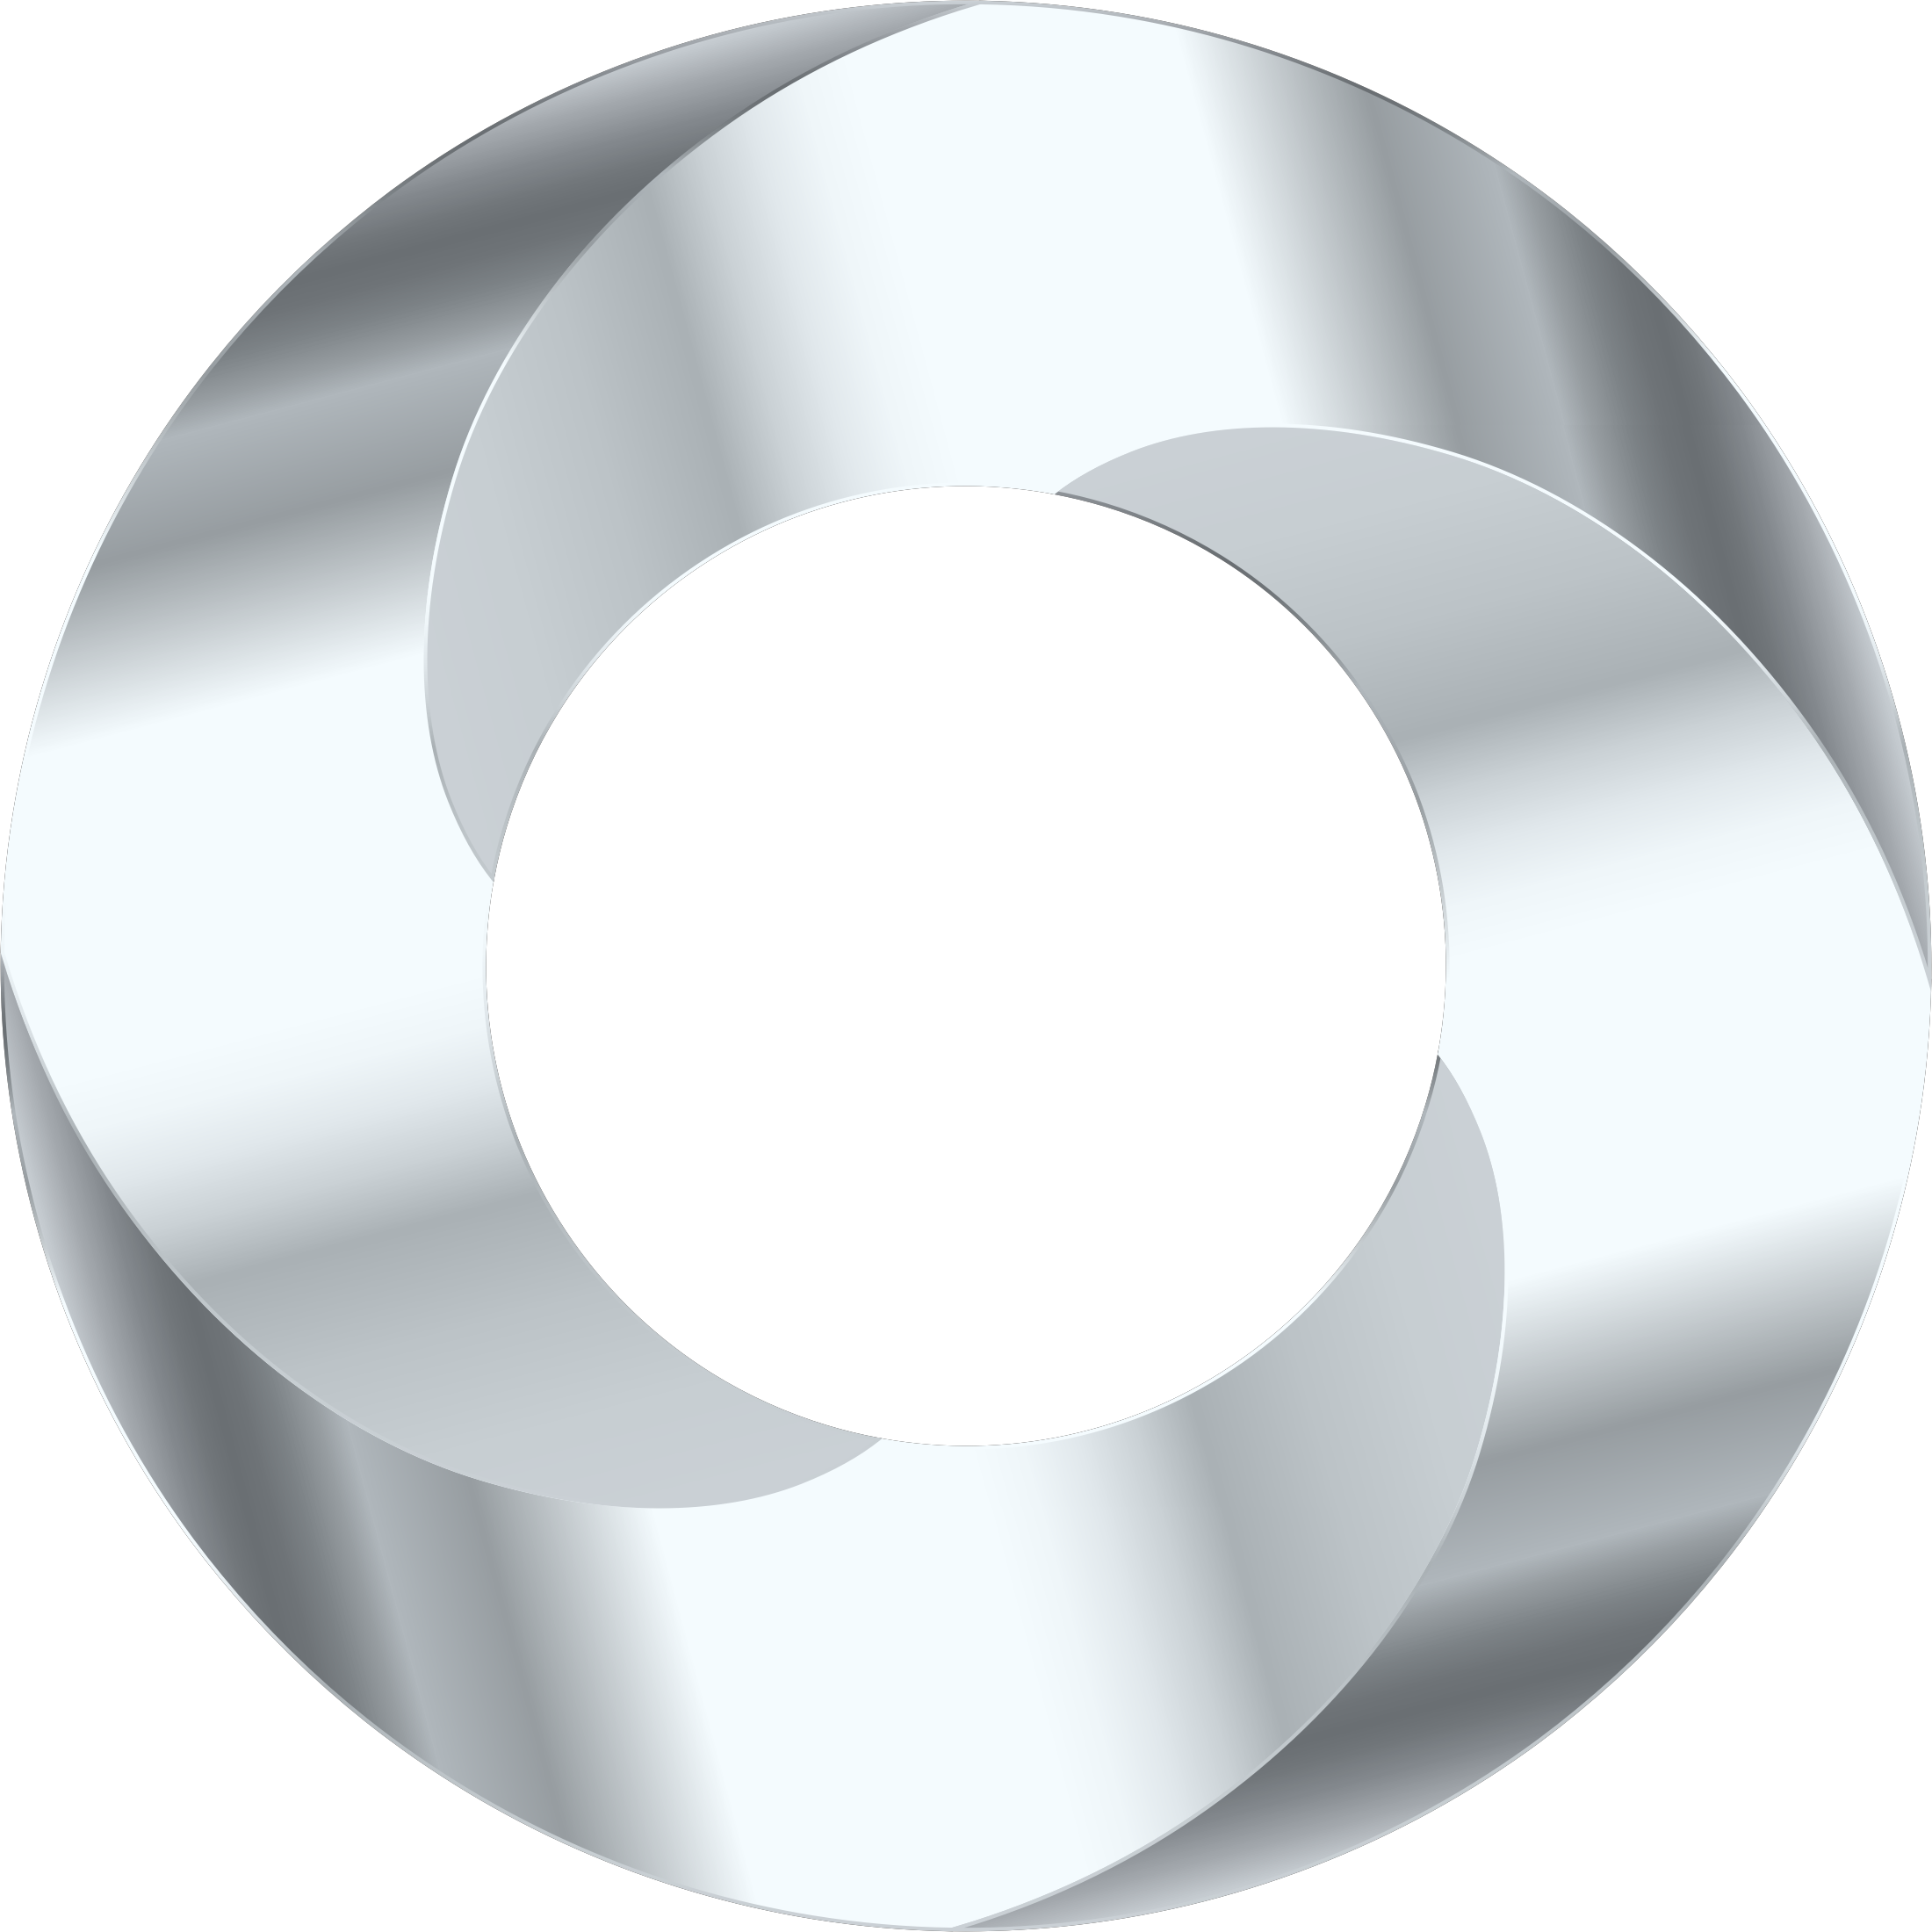 Silver circle png. Torus screw icons free